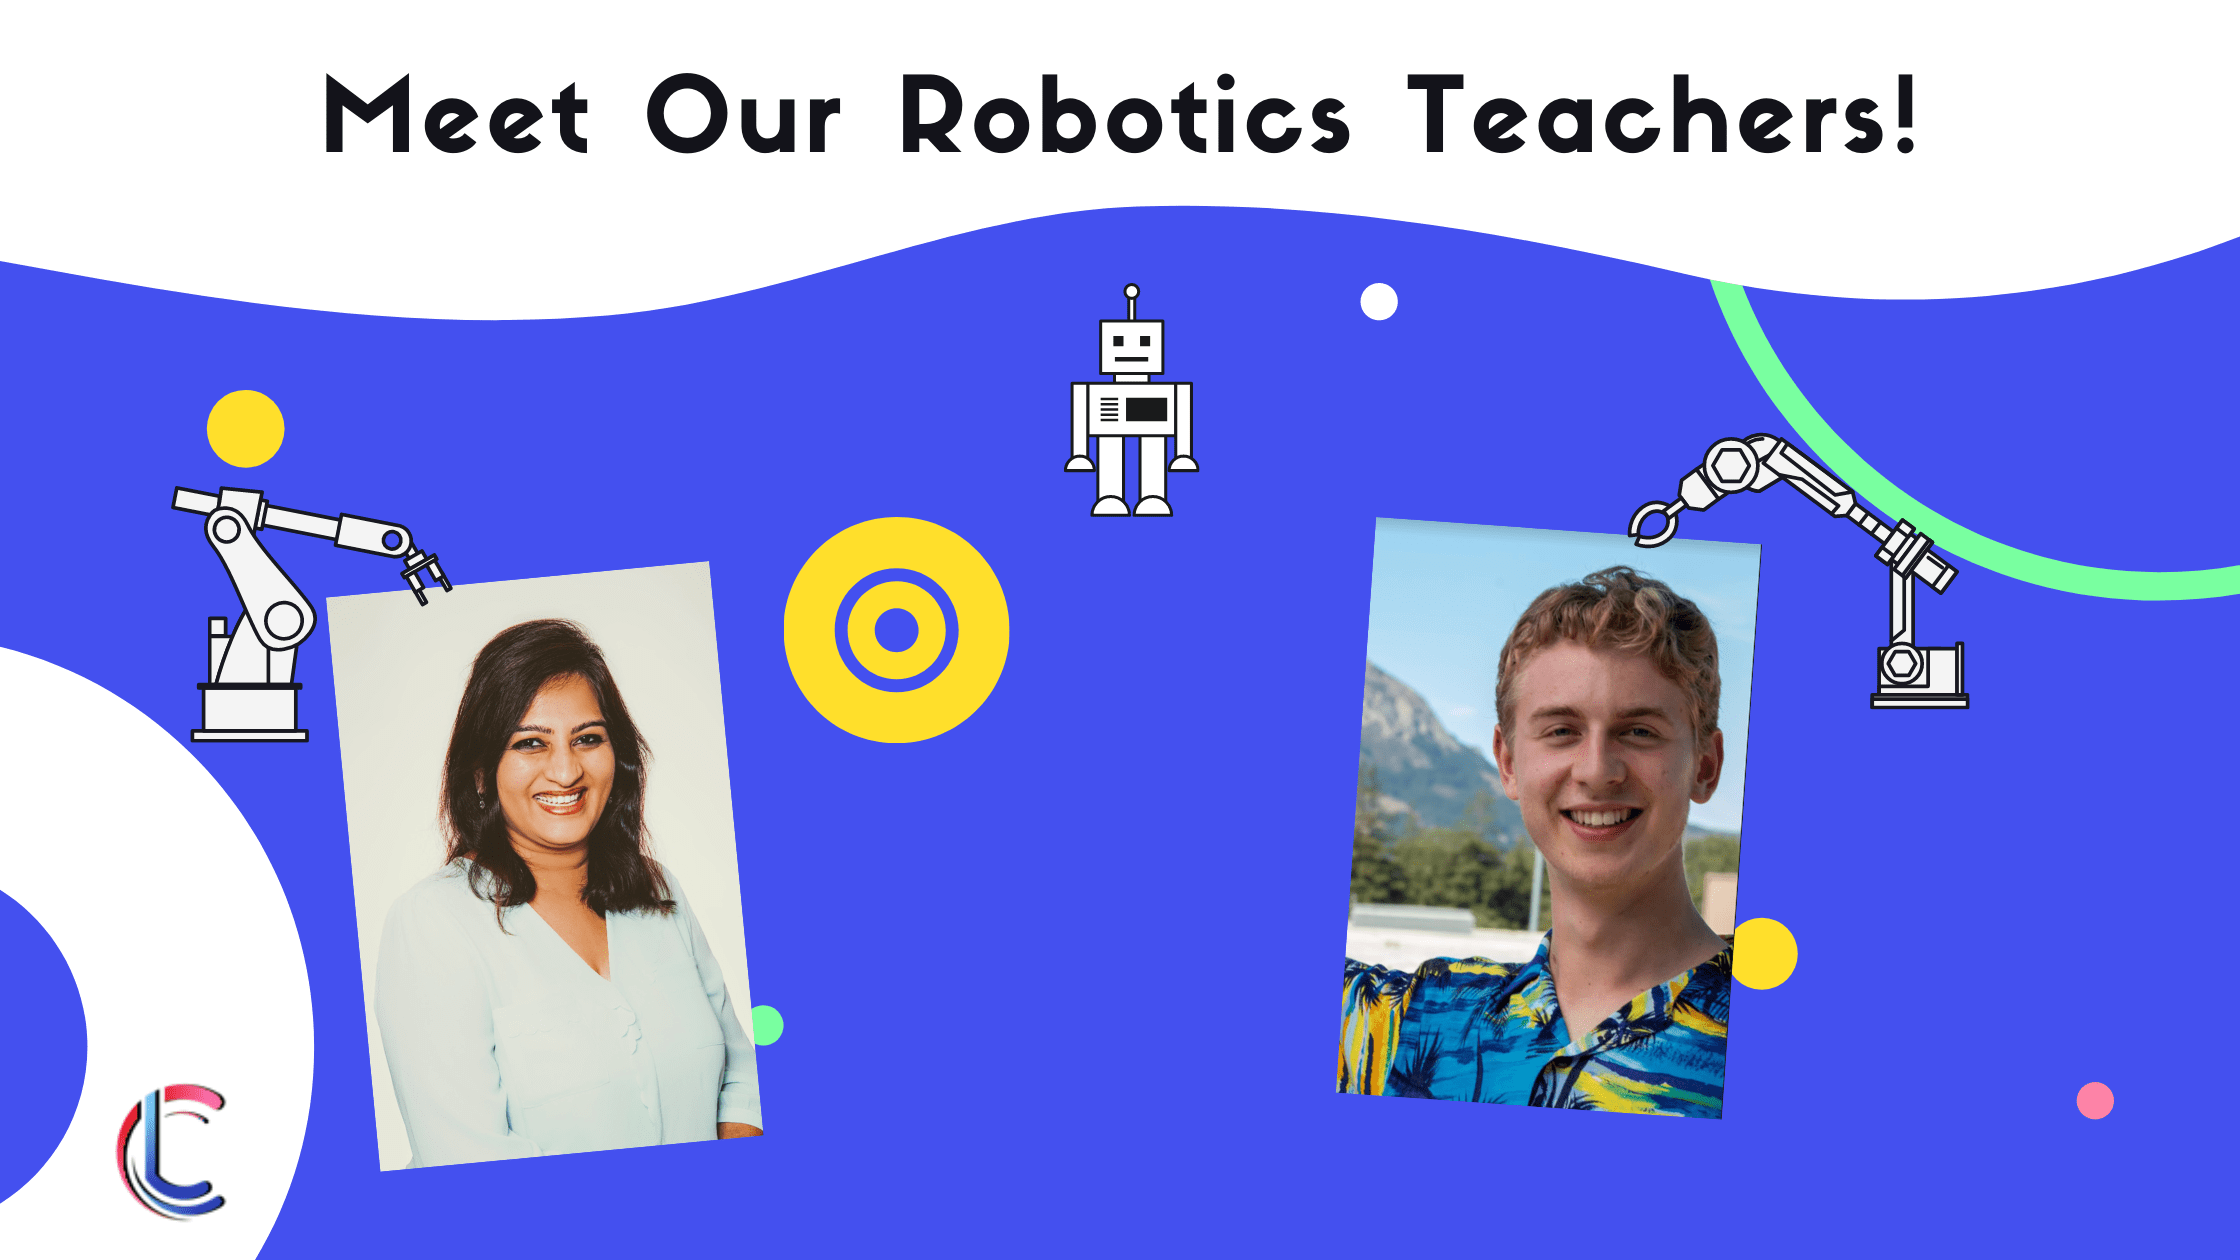 Coding With Robotics Online? Meet Our Awesome Robotics Teachers